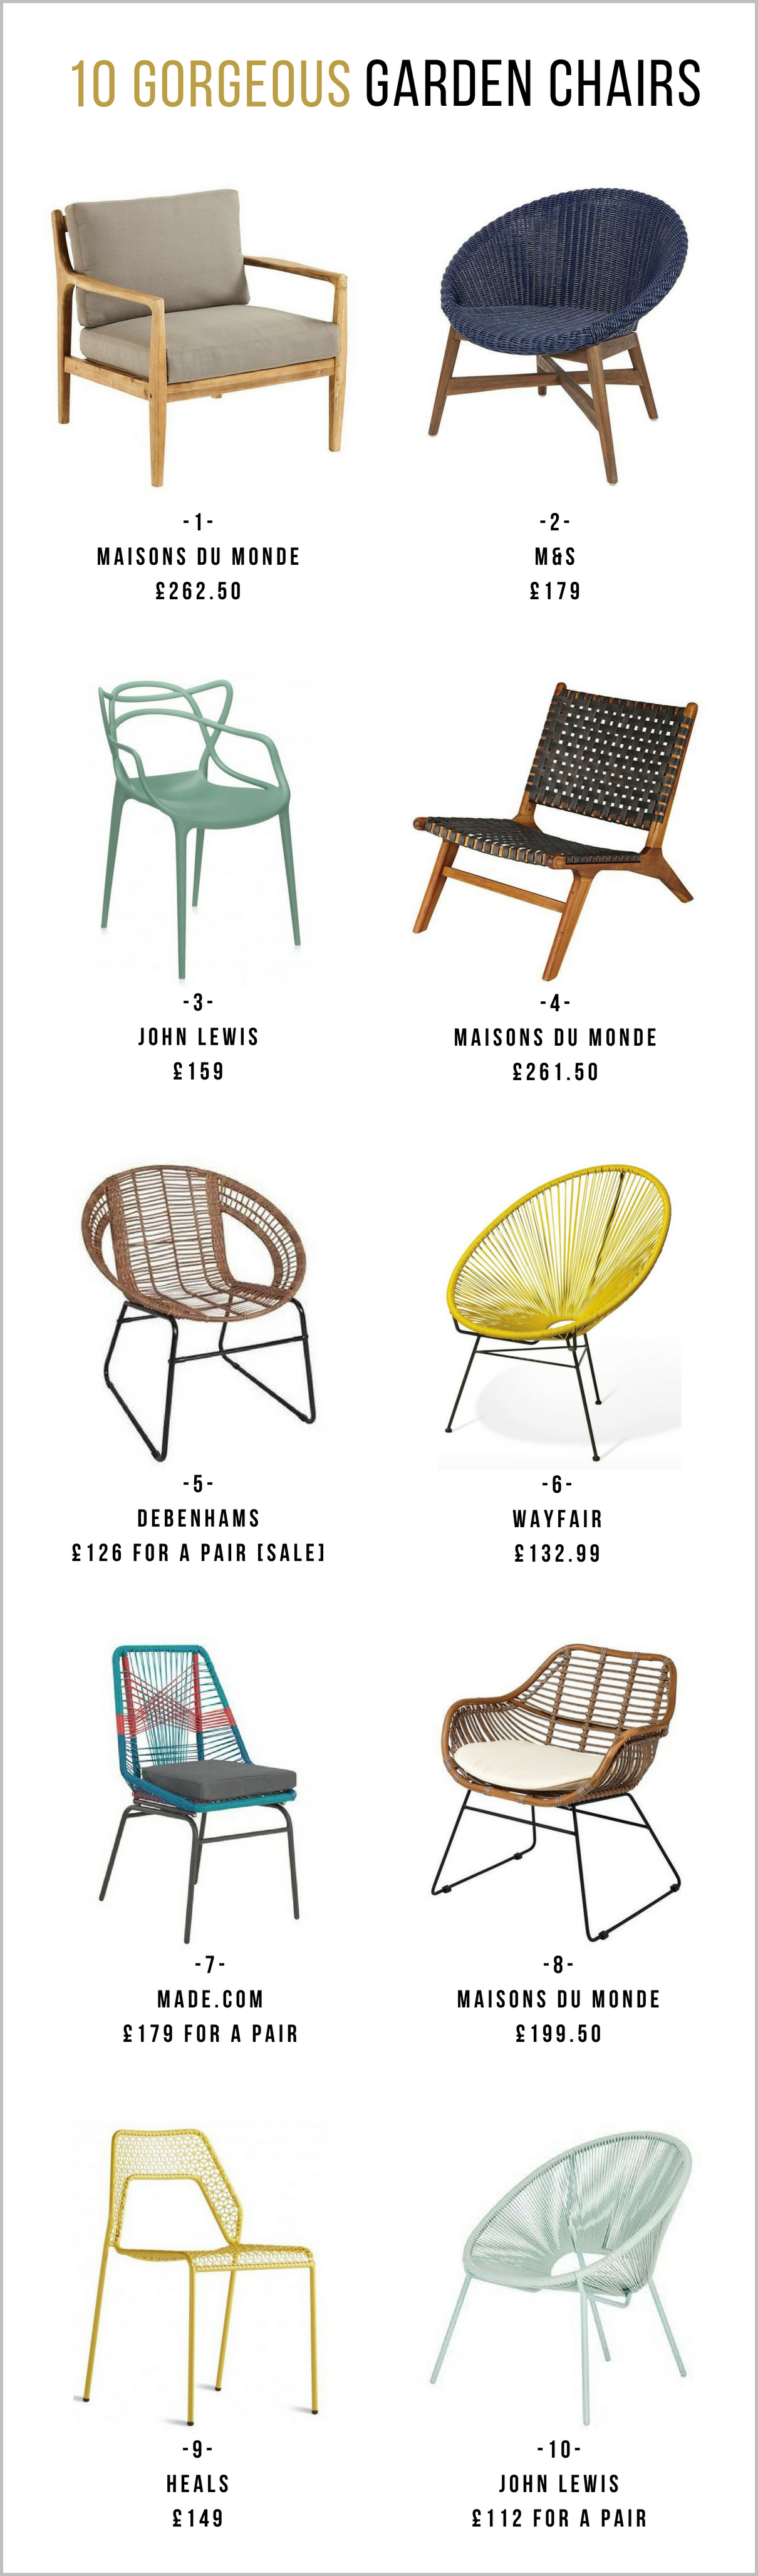 The best garden chairs - Roundup by First Sense